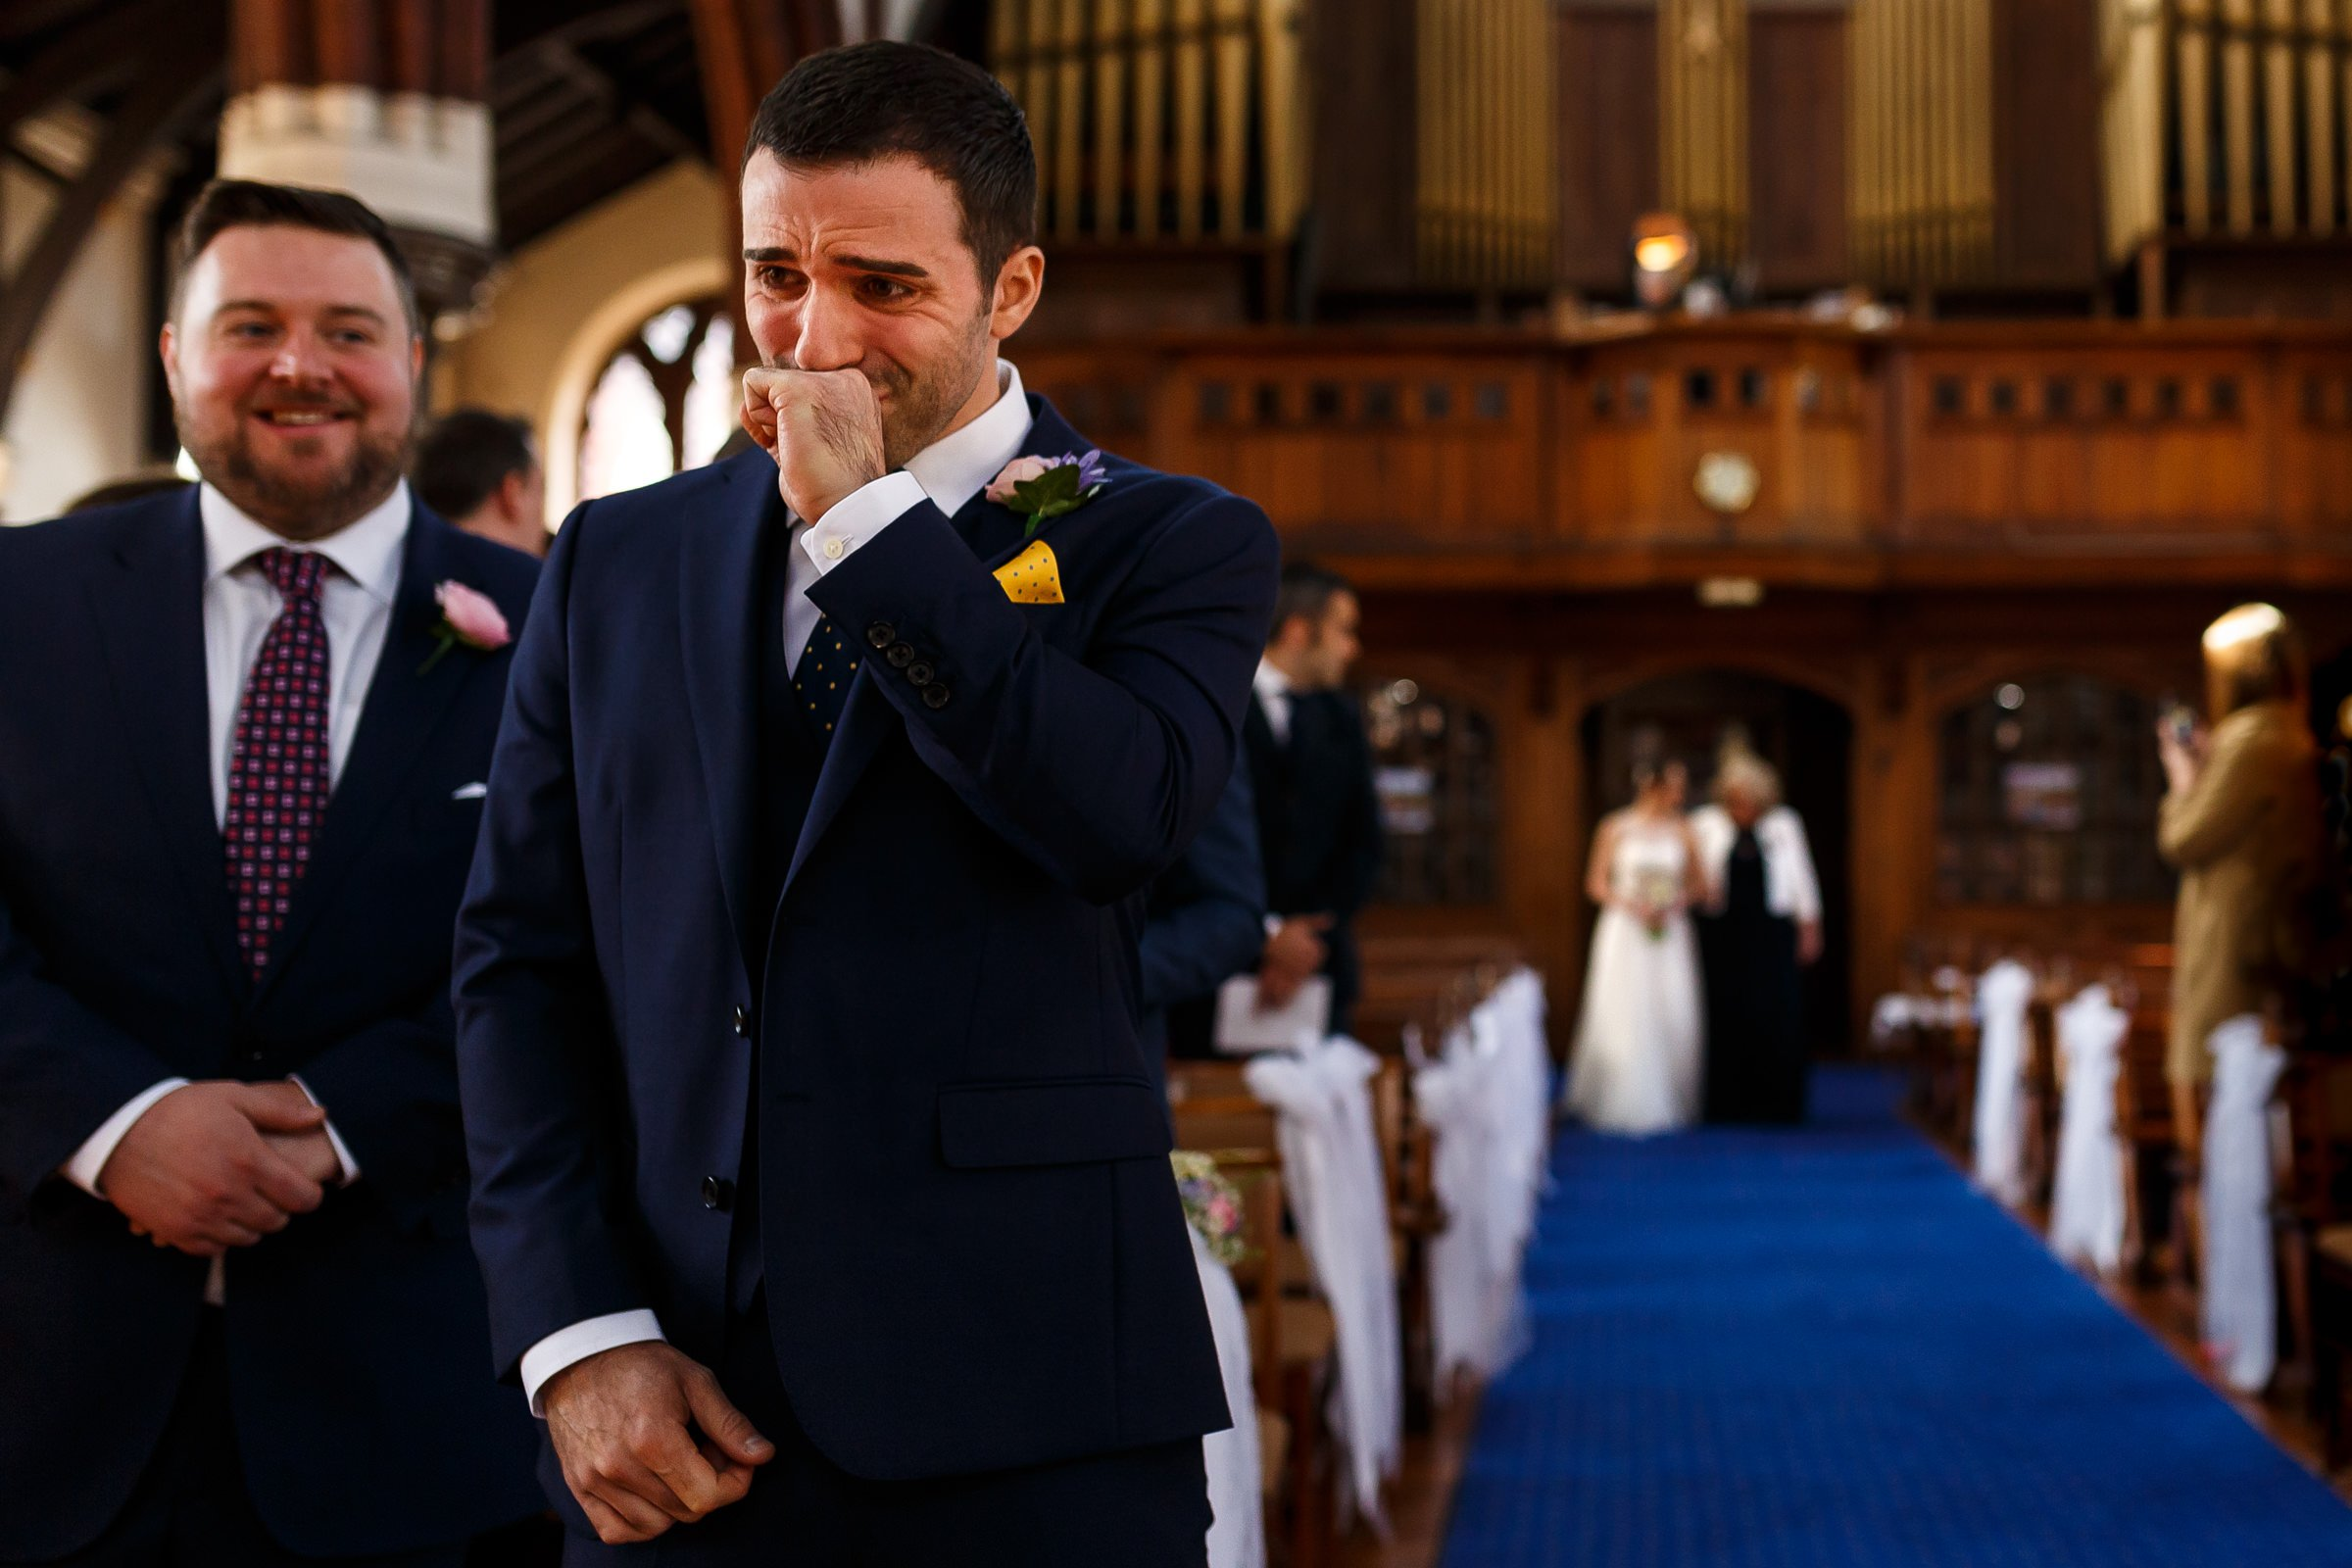 Crying nervous groom at wedding